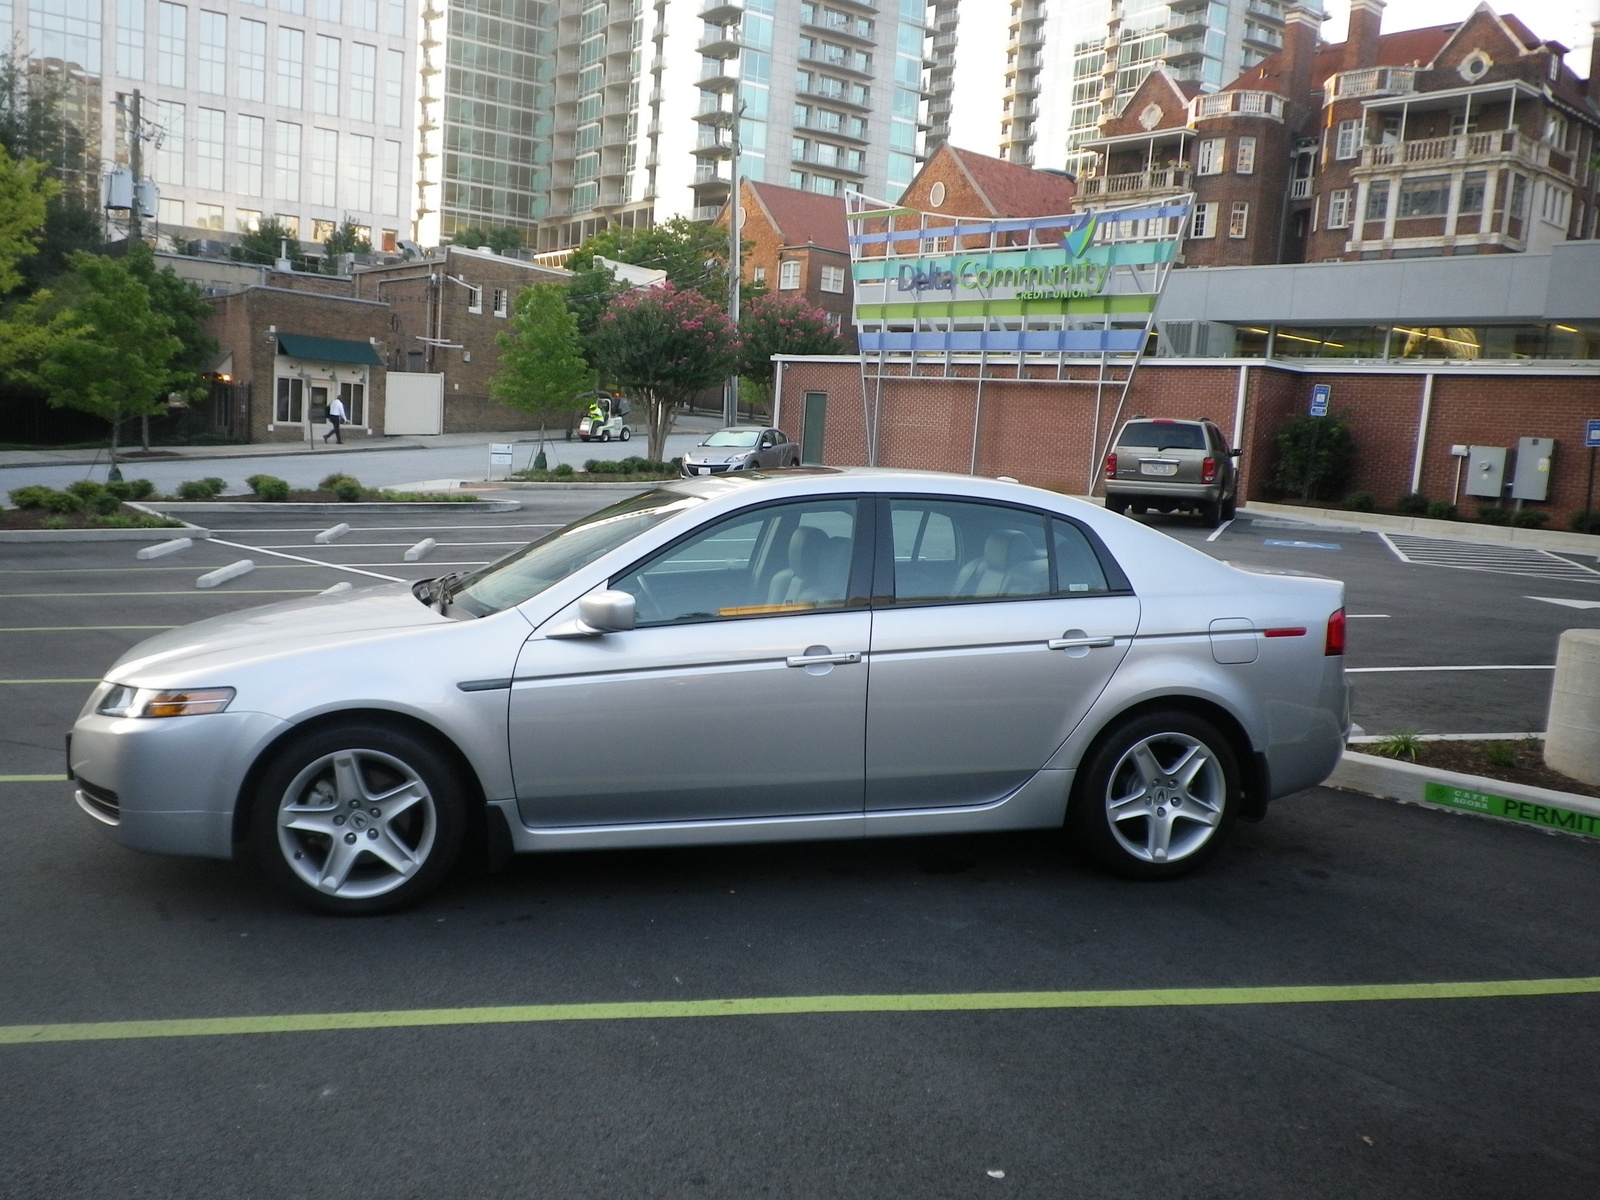 online sale denver in auctions left white carfinder co lot on salvage copart en title acura tl auto for view